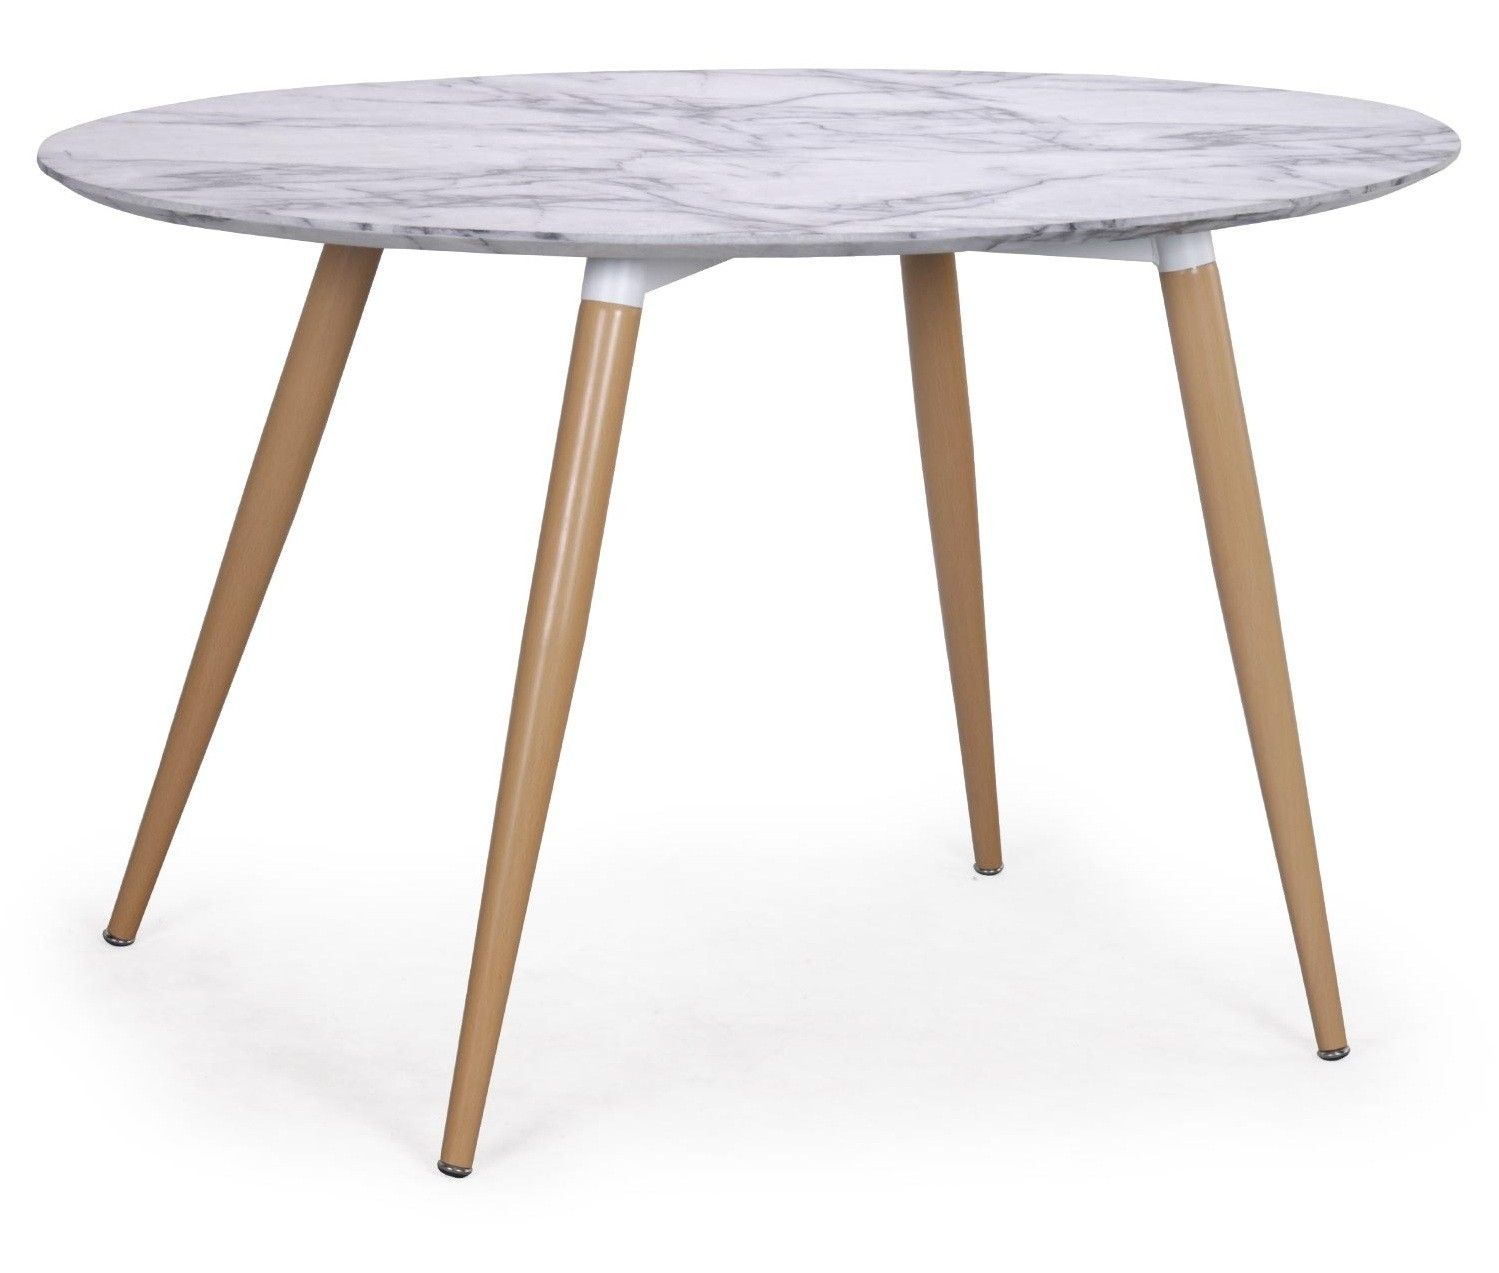 Table A Manger Ovale Effet Marbre Blanc Sicca 130 Cm En 2020 Table A Manger Ovale Table A Manger Table Marbre